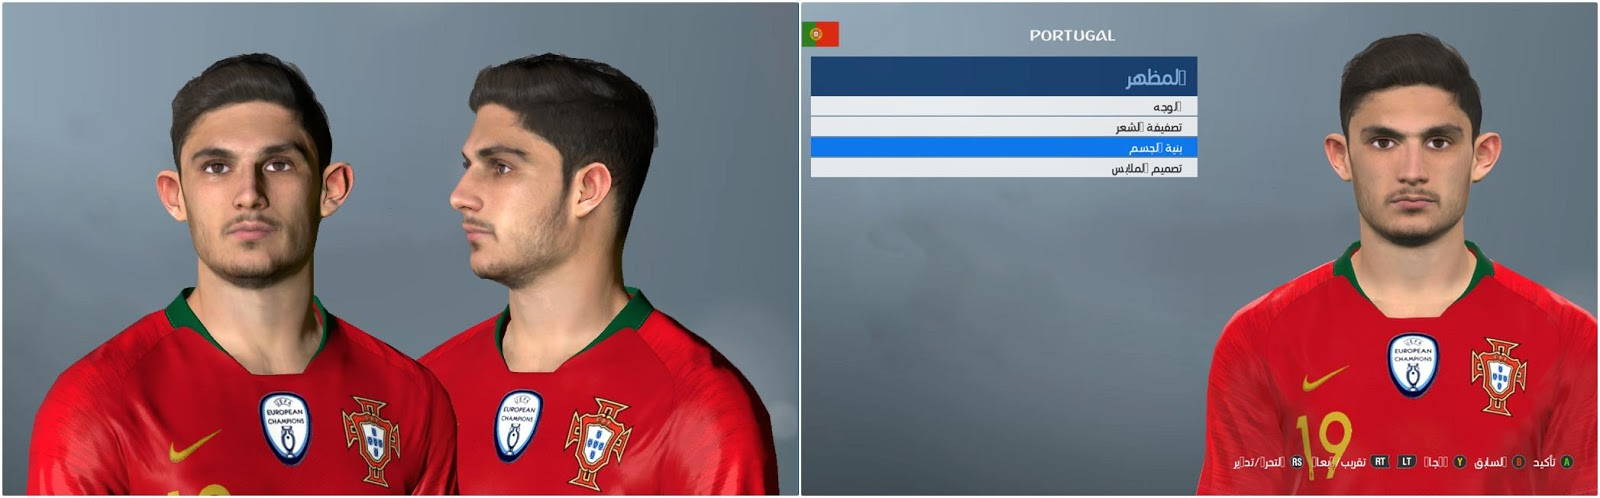 G. Guedes Face For PES 2017 (FIFA19 version) by Shenawy